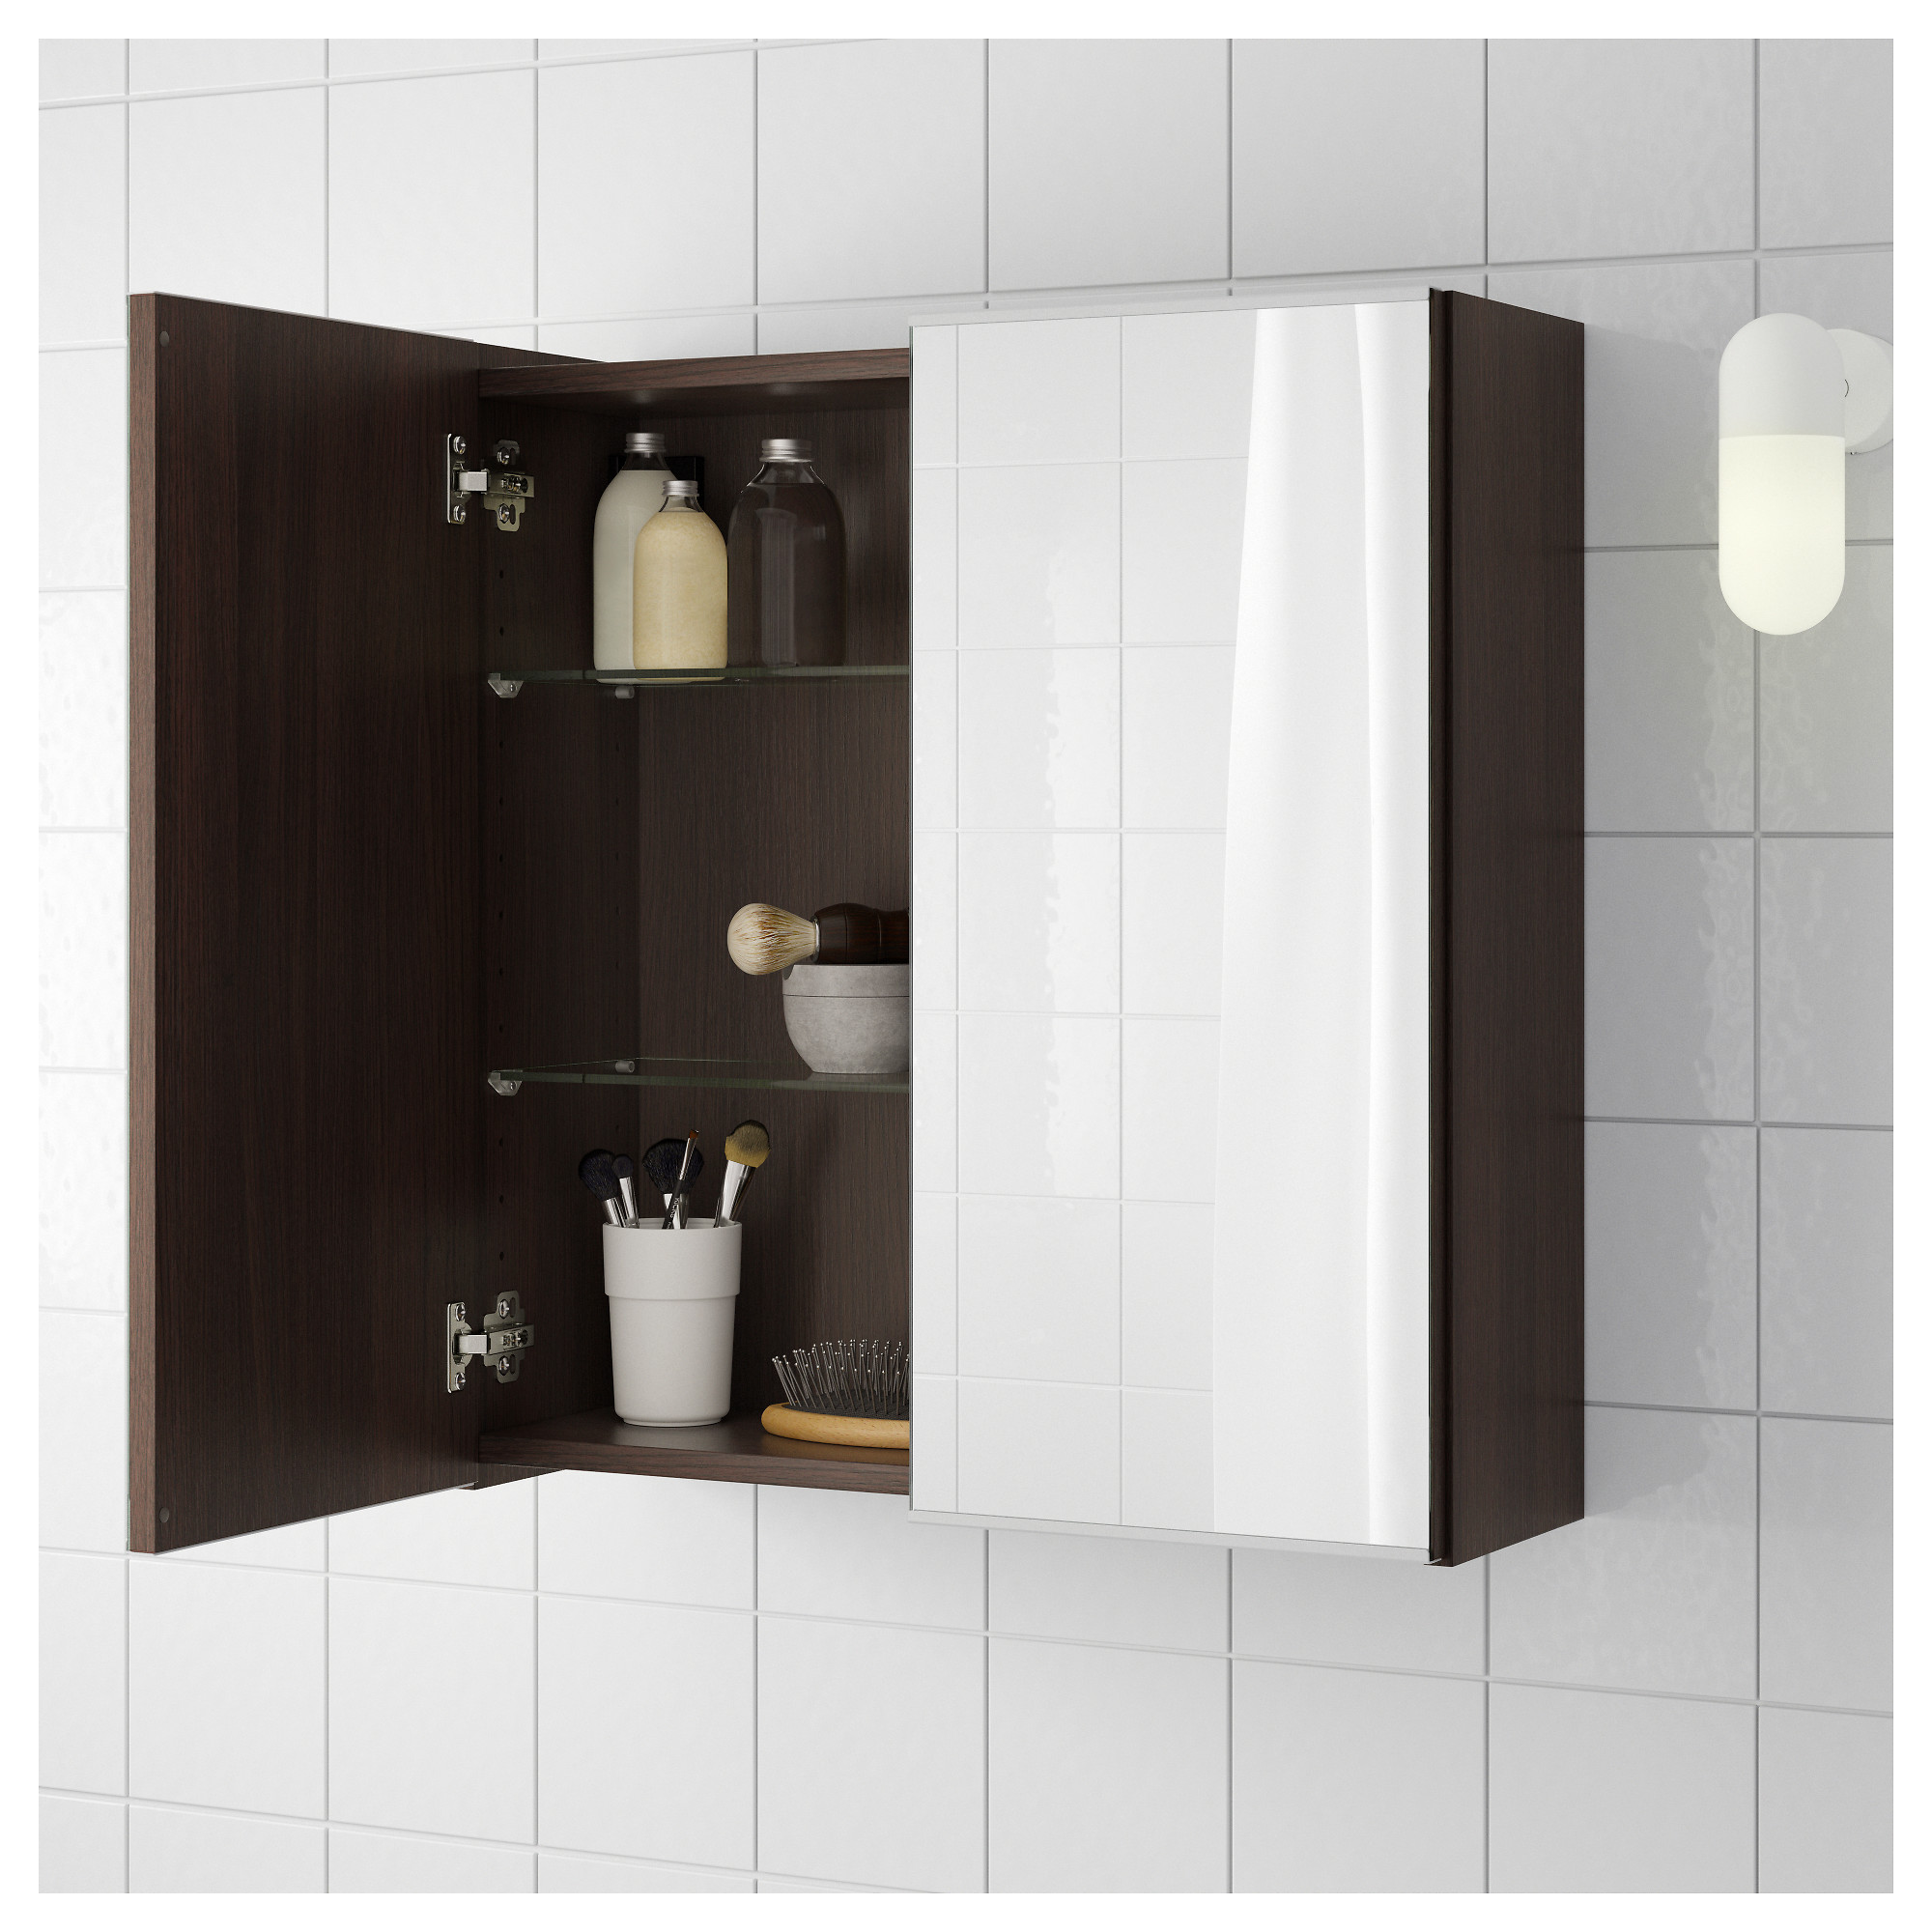 replacement recessed inspiring adorable bathroom medicine cabinet mirror decoration toilet slim